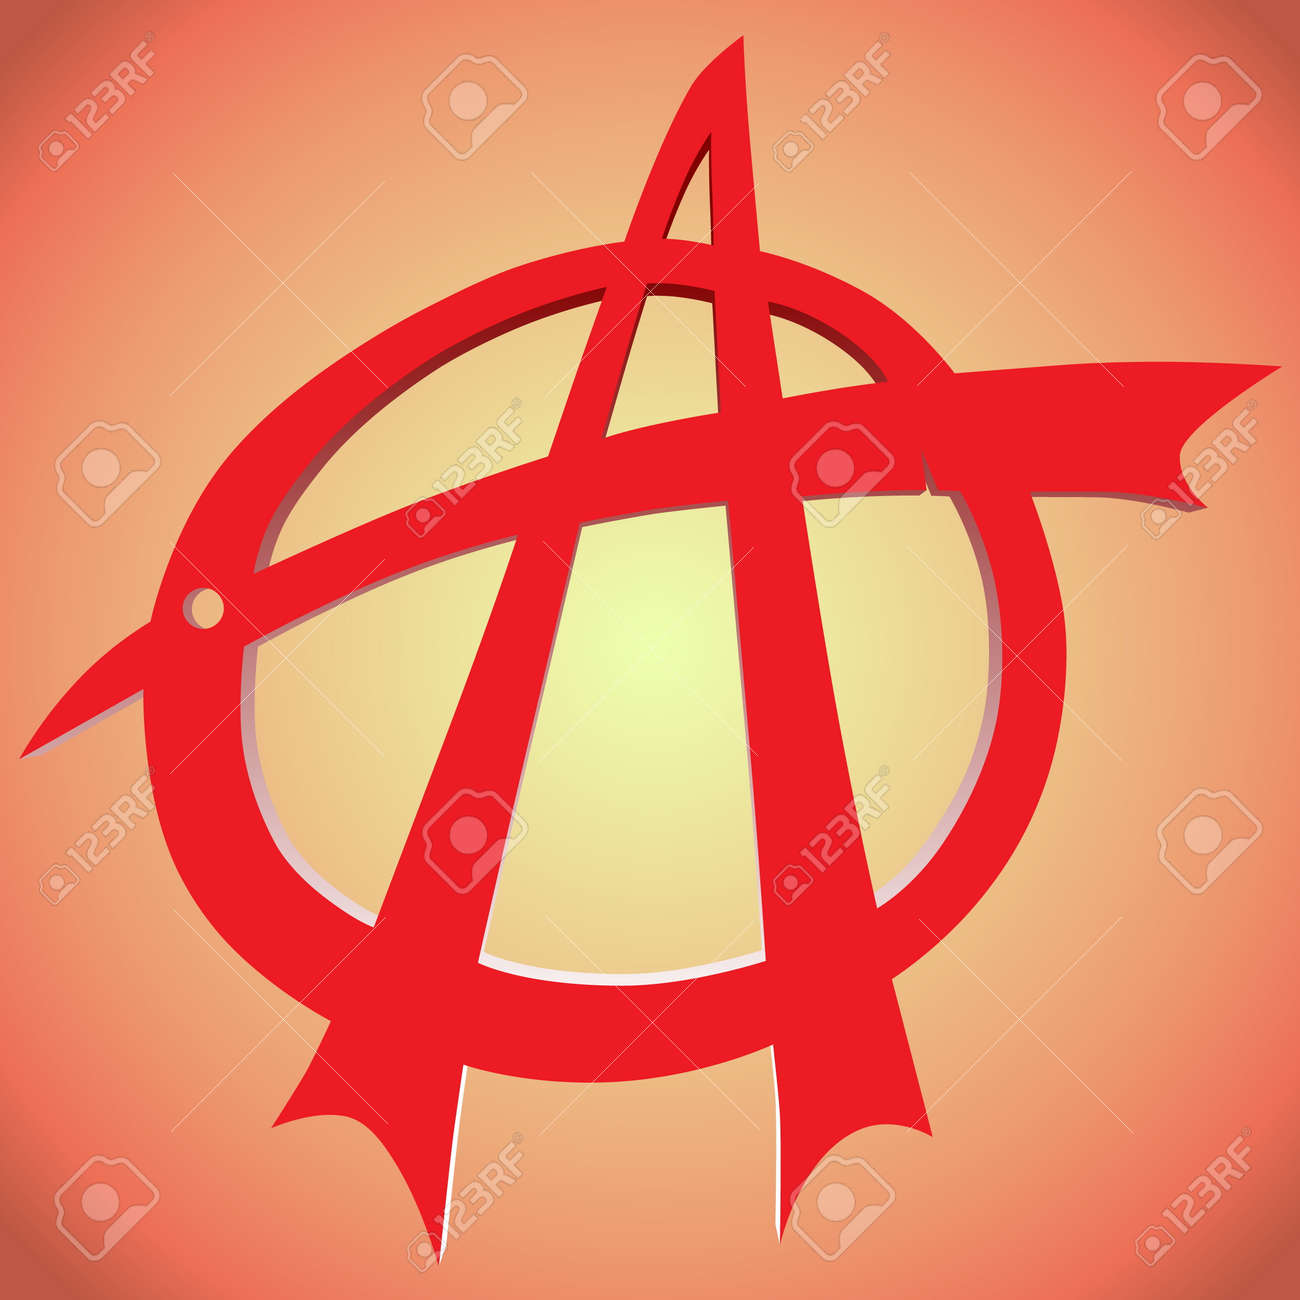 Torn Anarchy Symbol In Red With A Background Royalty Free Cliparts